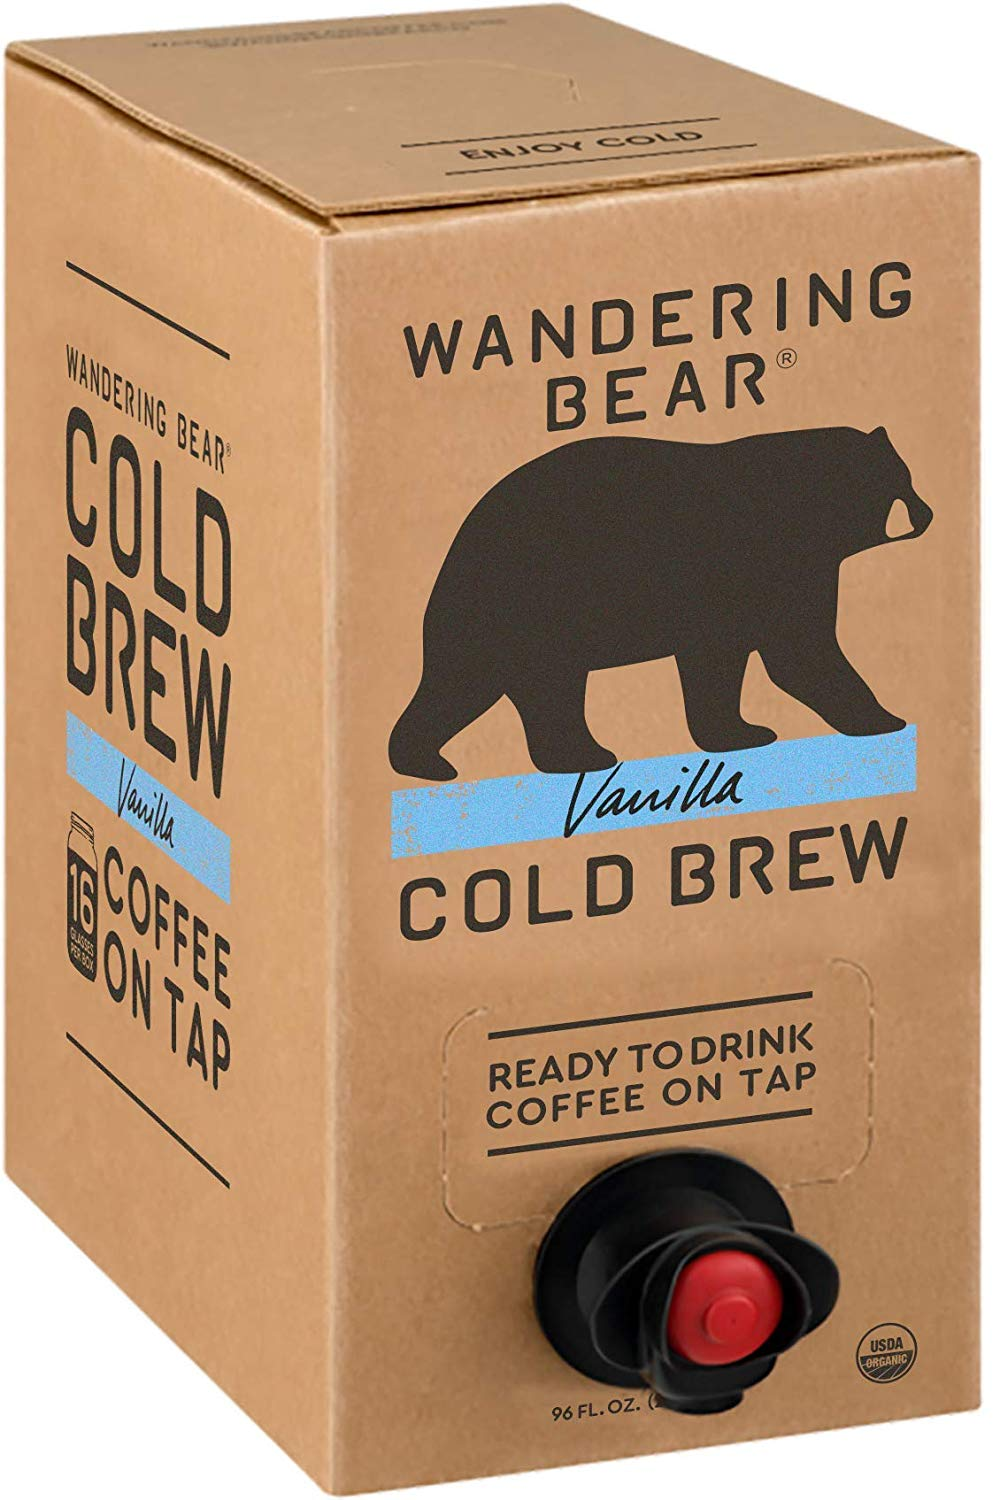 Wandering Bear Vanilla Cold Brew Coffee 96oz Fridge Box